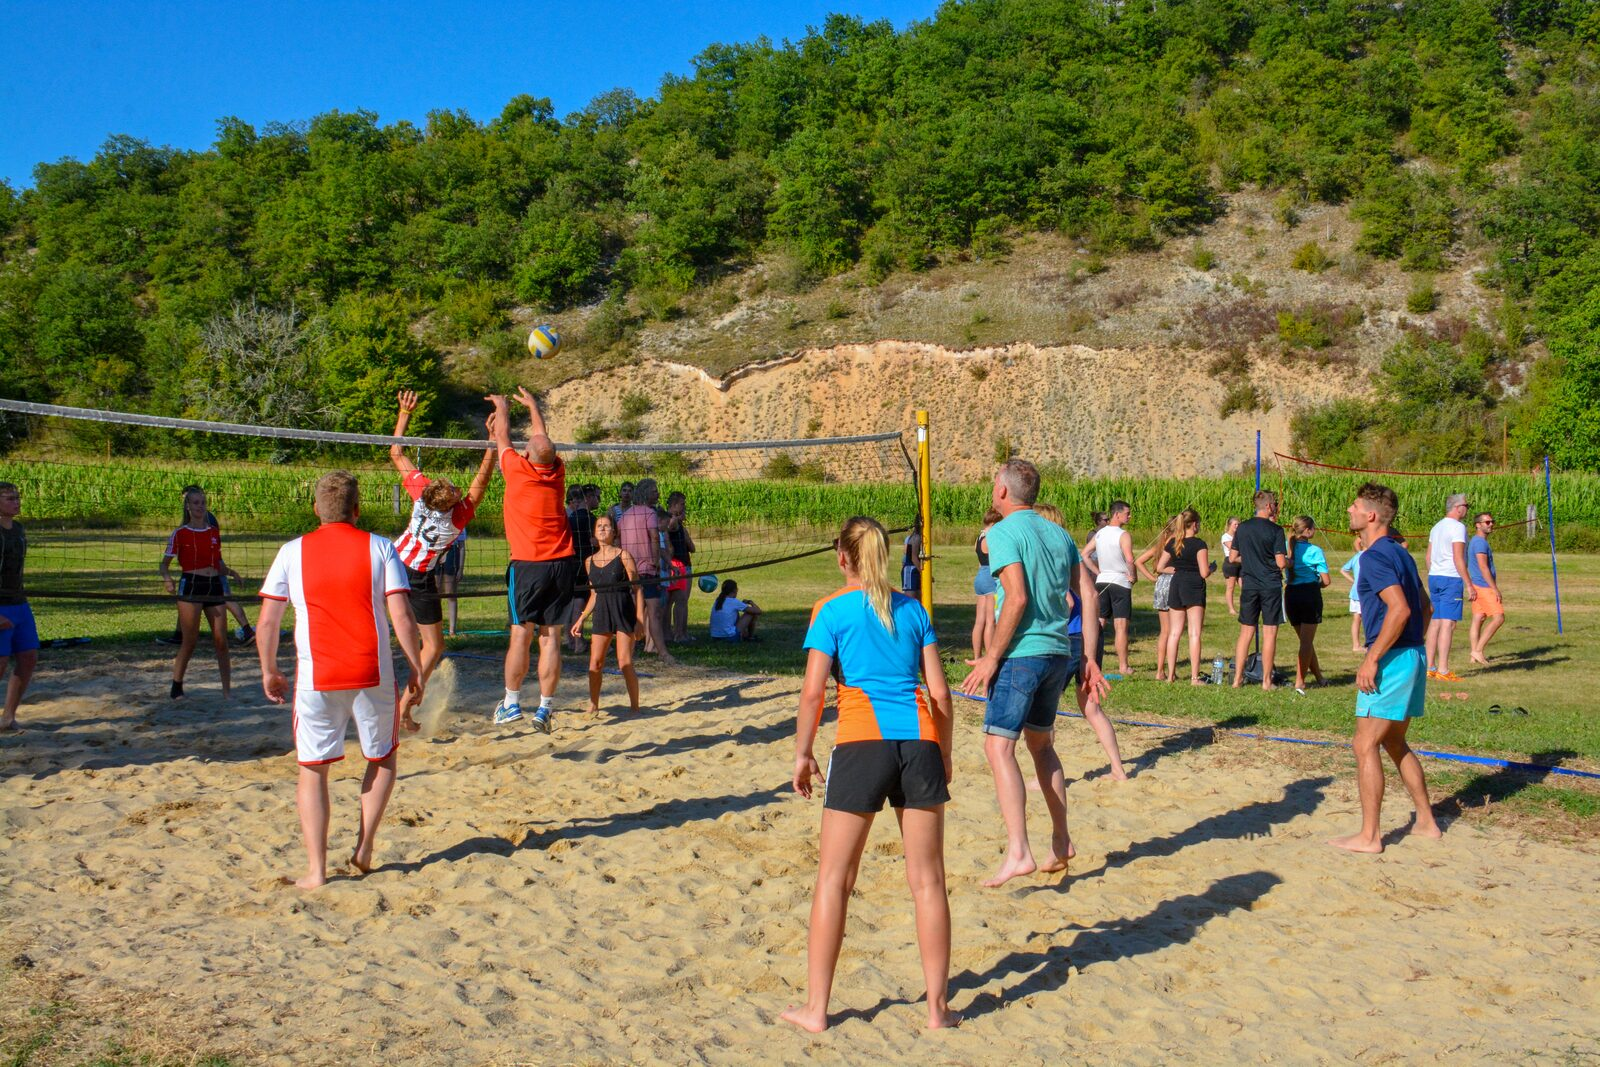 Volleyball tournament at La Draille Beter Uit holiday park